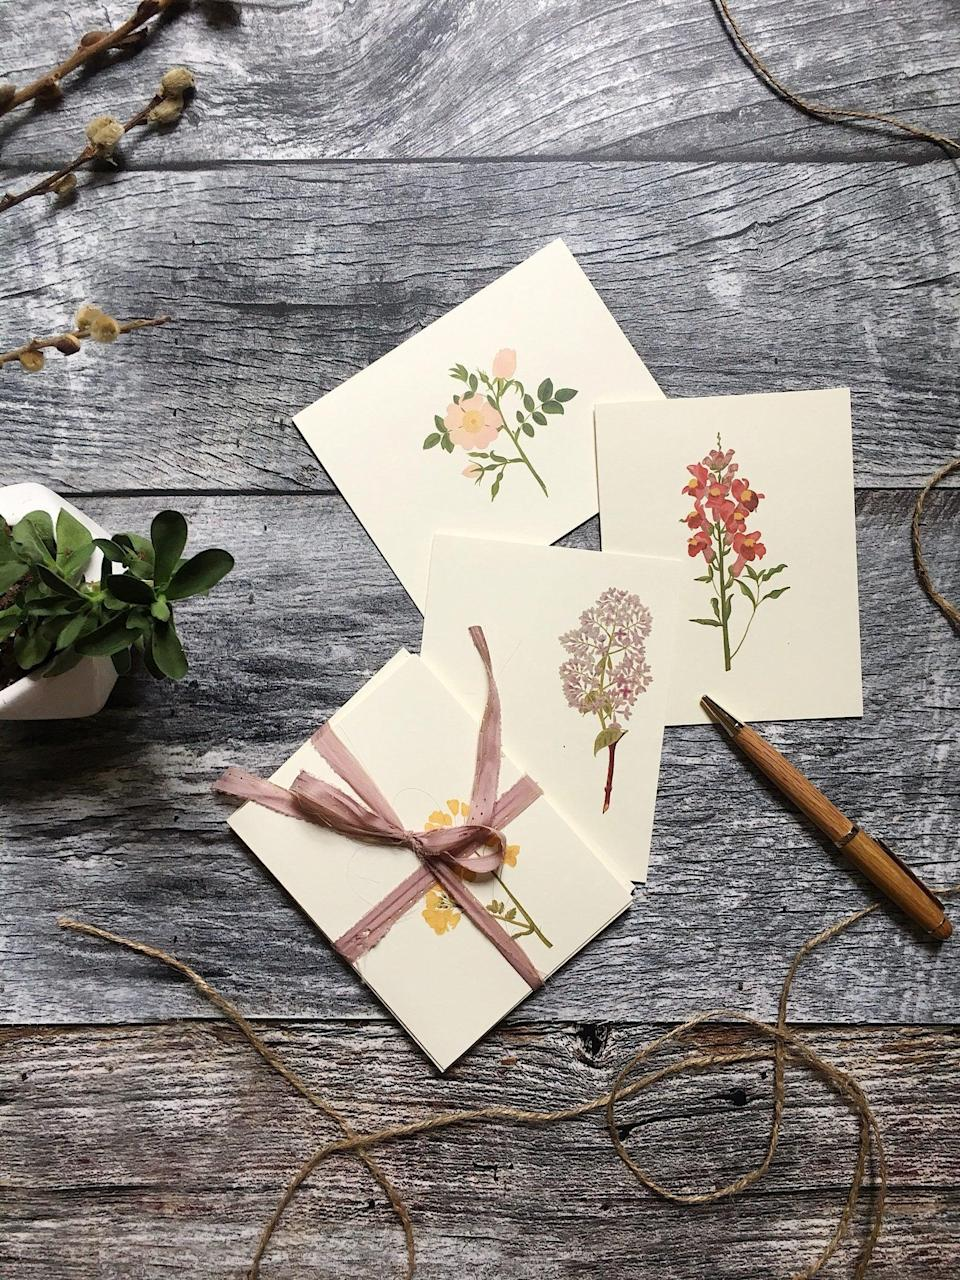 "While we can't be near loved ones as much as we'd like to, handwritten notes and thank you gifts carry even more meaning these days, and pretty stationary is a thoughtful tool anyone can get use out of. $12, Etsy. <a href=""https://www.etsy.com/listing/638871139/blank-cards-flower-flower-cards-and"" rel=""nofollow noopener"" target=""_blank"" data-ylk=""slk:Get it now!"" class=""link rapid-noclick-resp"">Get it now!</a>"